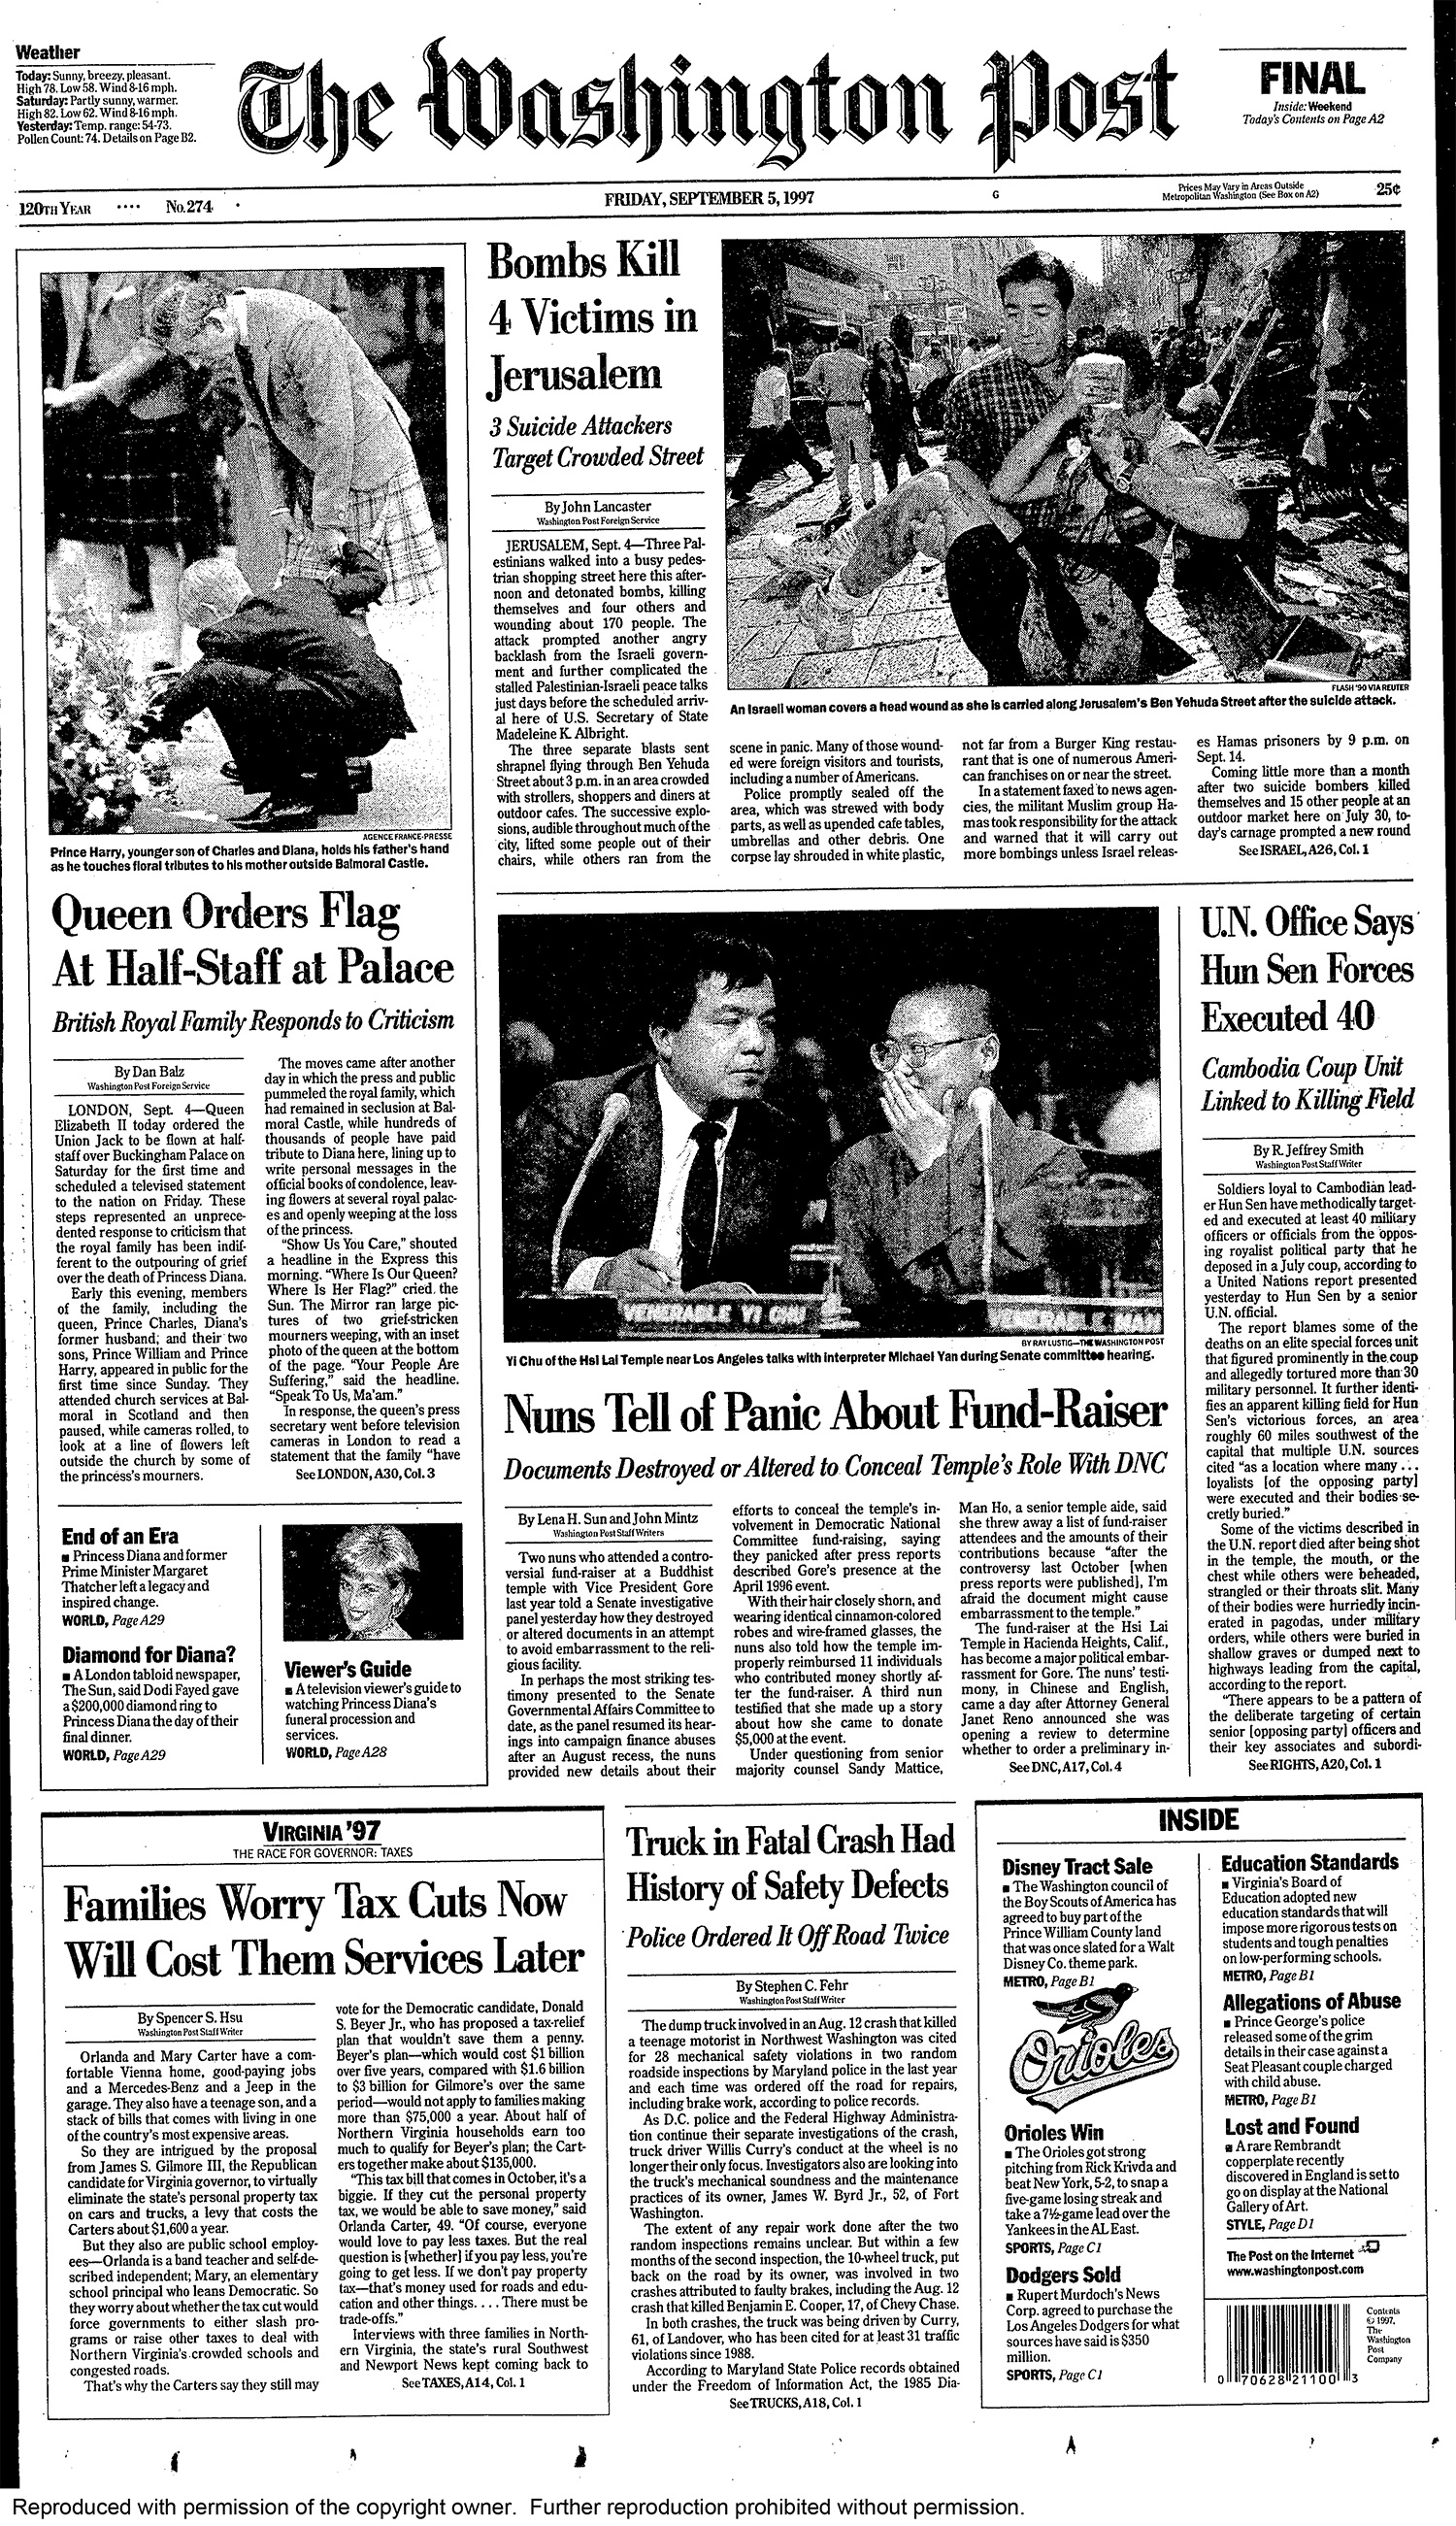 Remembering Princess Diana S Death 8 Days In 1997 That Shook Britain And The World The Washington Post